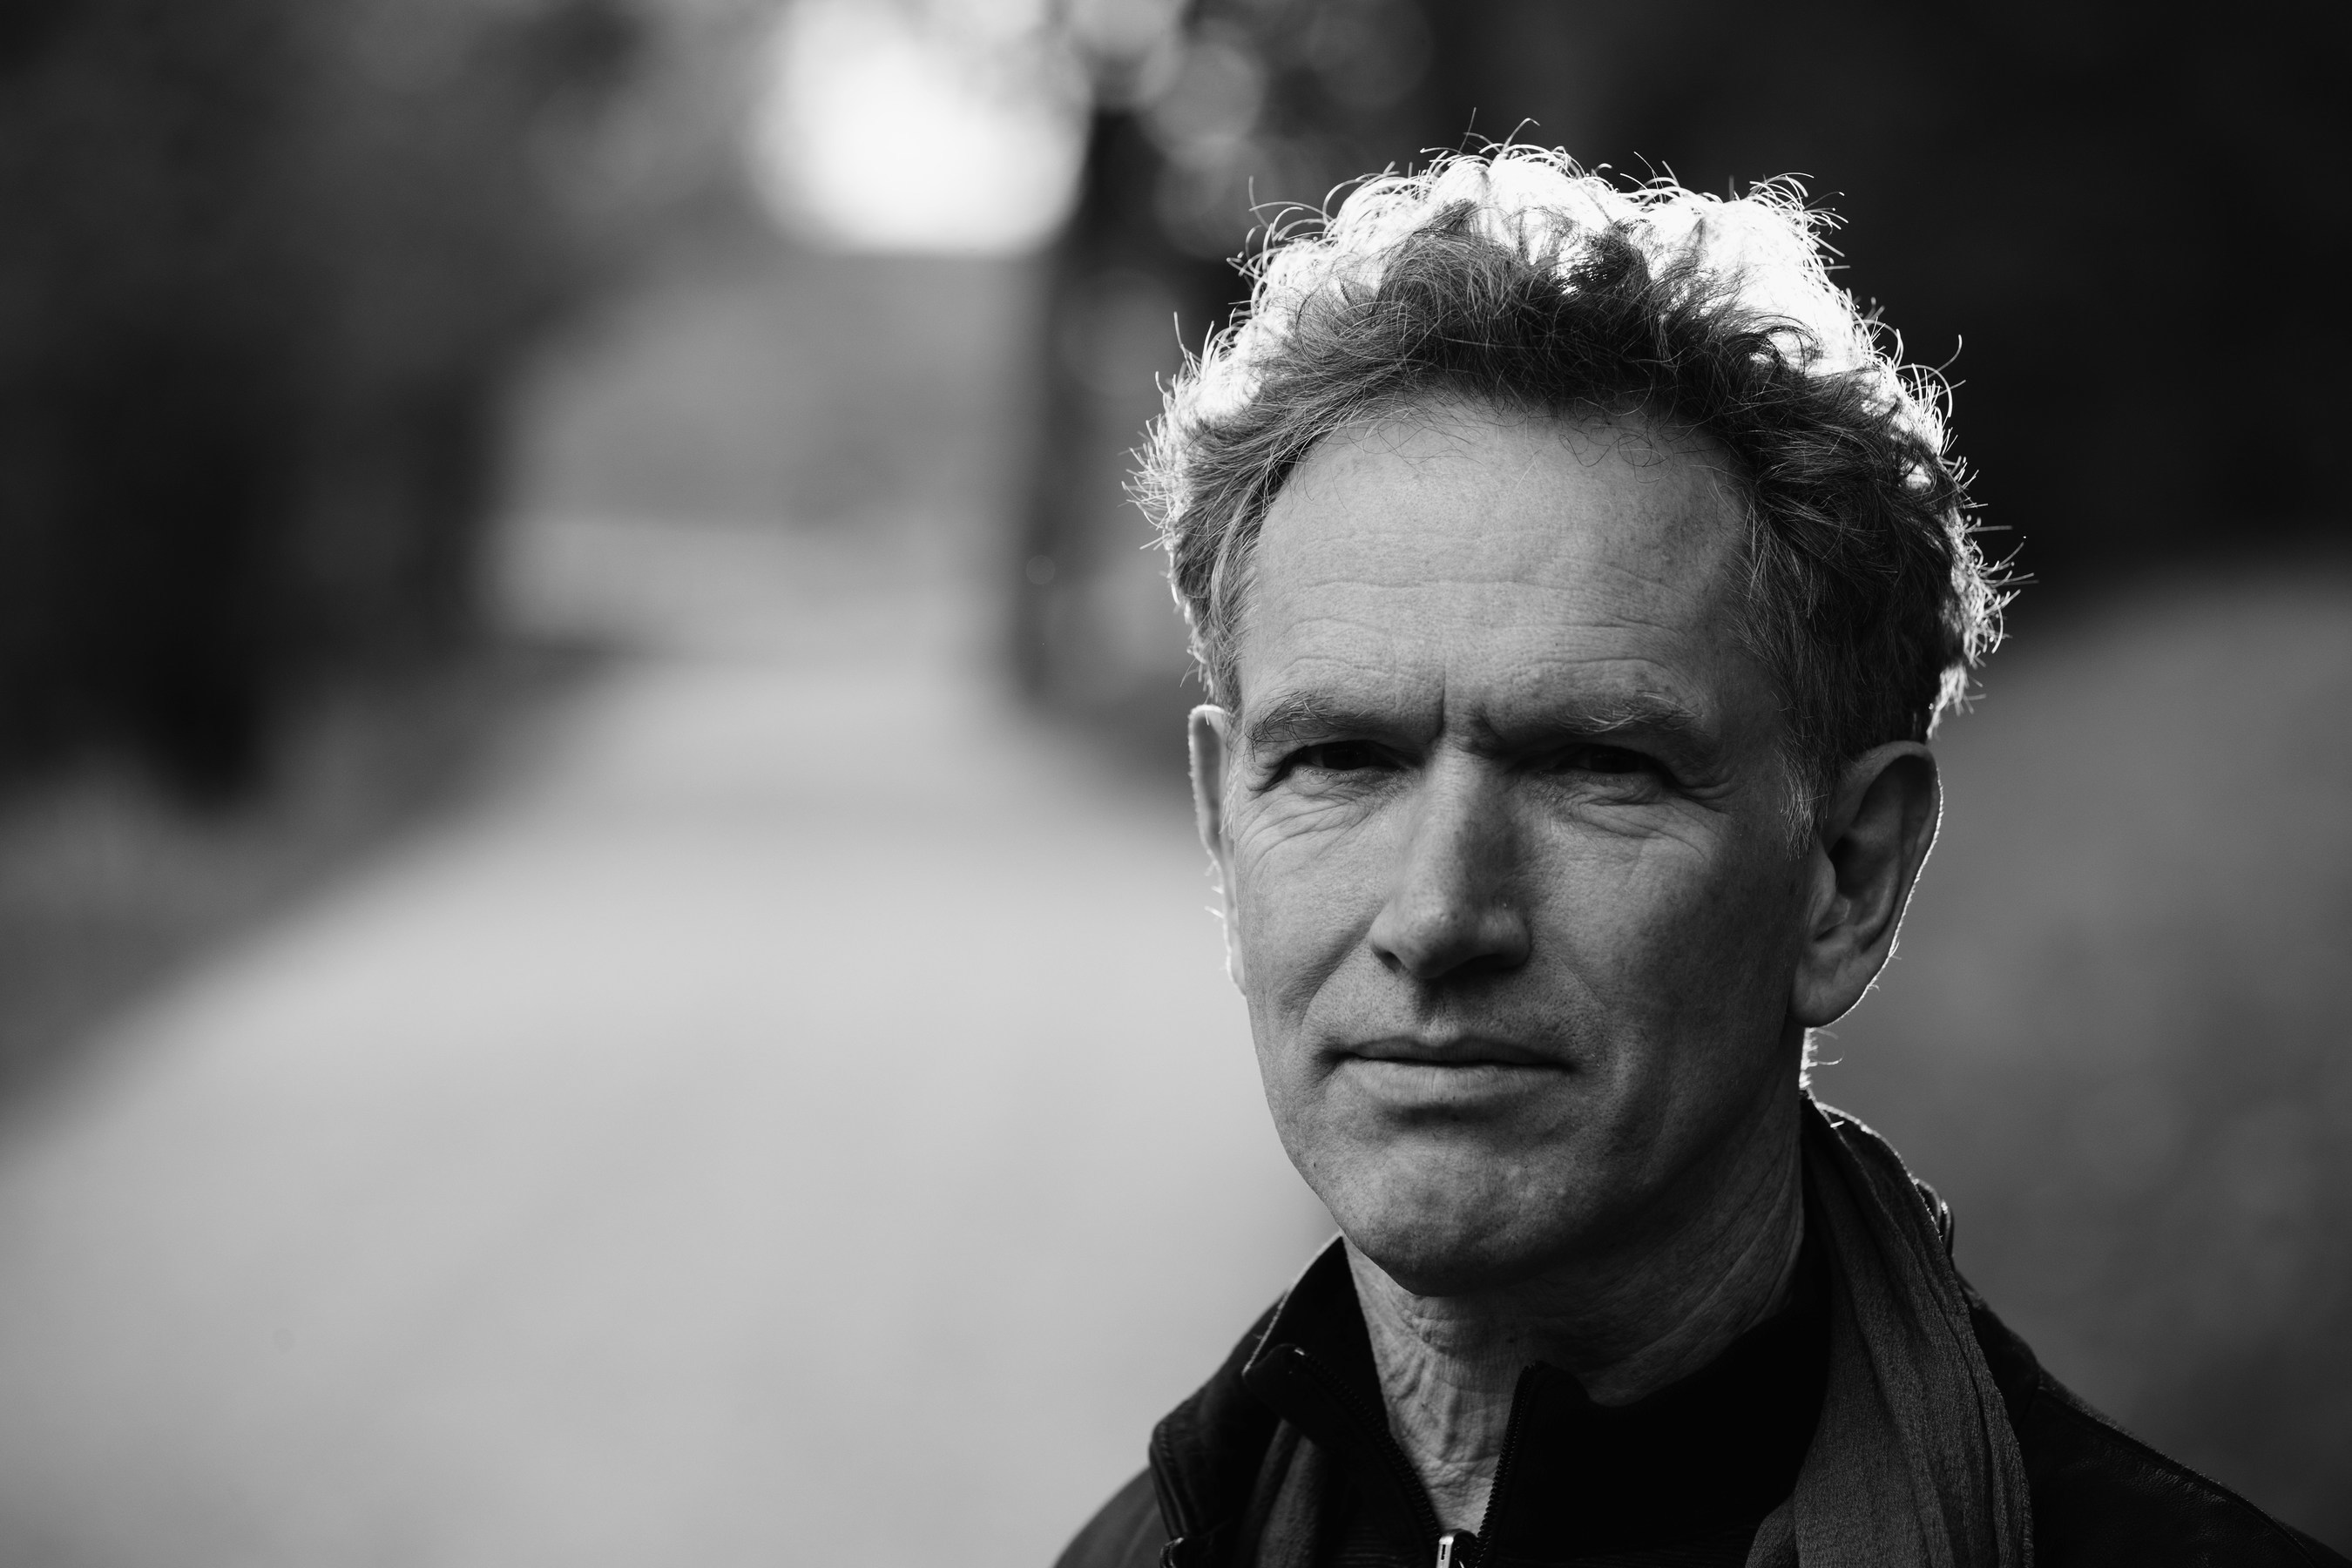 """Danish composer Hans Abrahamsen received the 2016 Grawemeyer Award for Music Composition for """"let me tell you,"""" a song cycle for soprano and orchestra. The University of Louisville presents the Grawemeyer Awards annually for outstanding works in music composition, ideas improving world order, psychology and education and gives a religion prize jointly with Louisville Presbyterian Theological Seminary.  Photo by Lars Skaaning."""